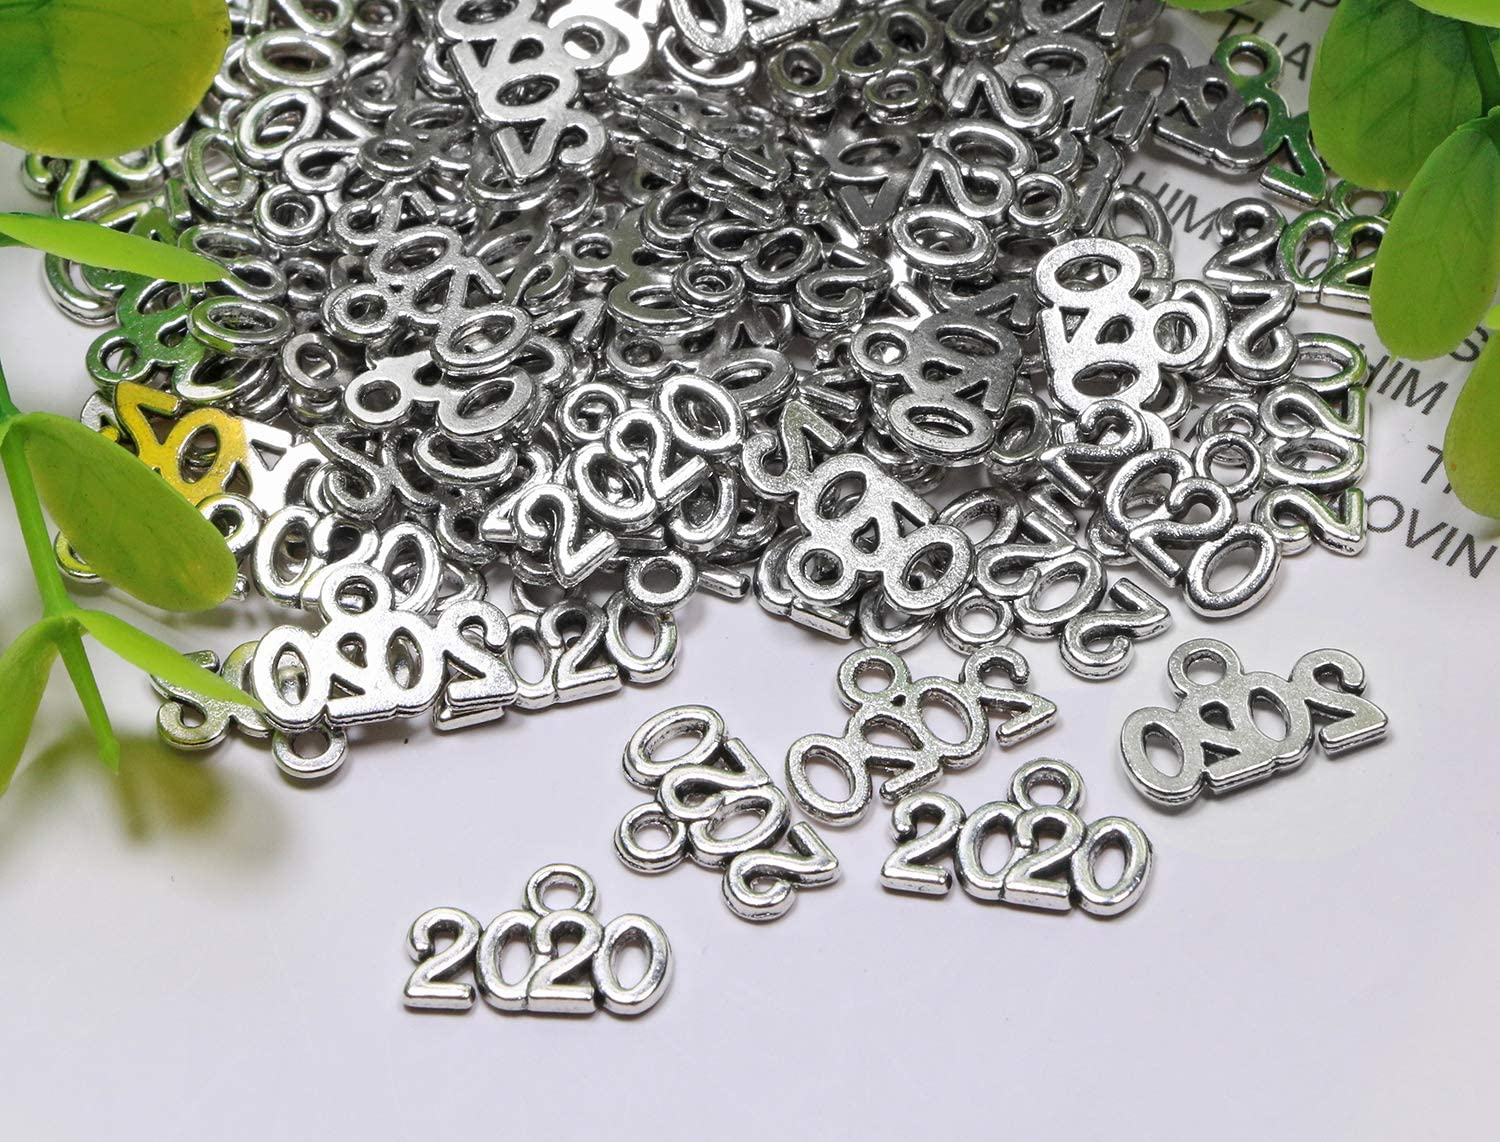 Silver, 2020 Shapenty Mini Metal Year Signet 2020 DIY Pendant Charms Accessory Bulk for Bracelet Necklace Earrings Keychain Tassels Crafting Jewelry Making Christmas Graduation Party Decor 100PCS